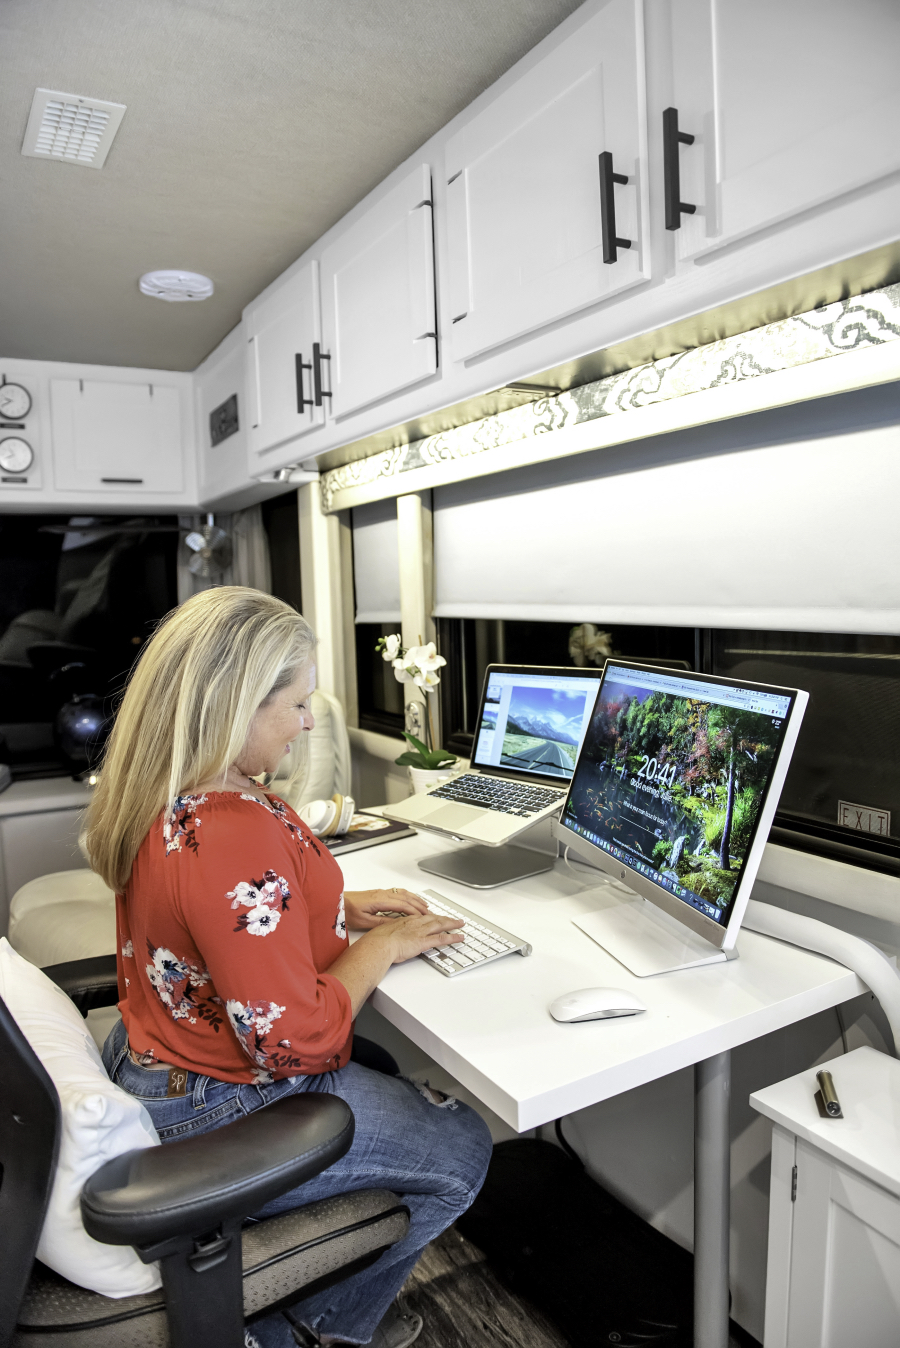 Contemporary RV workspace from RVlove.com